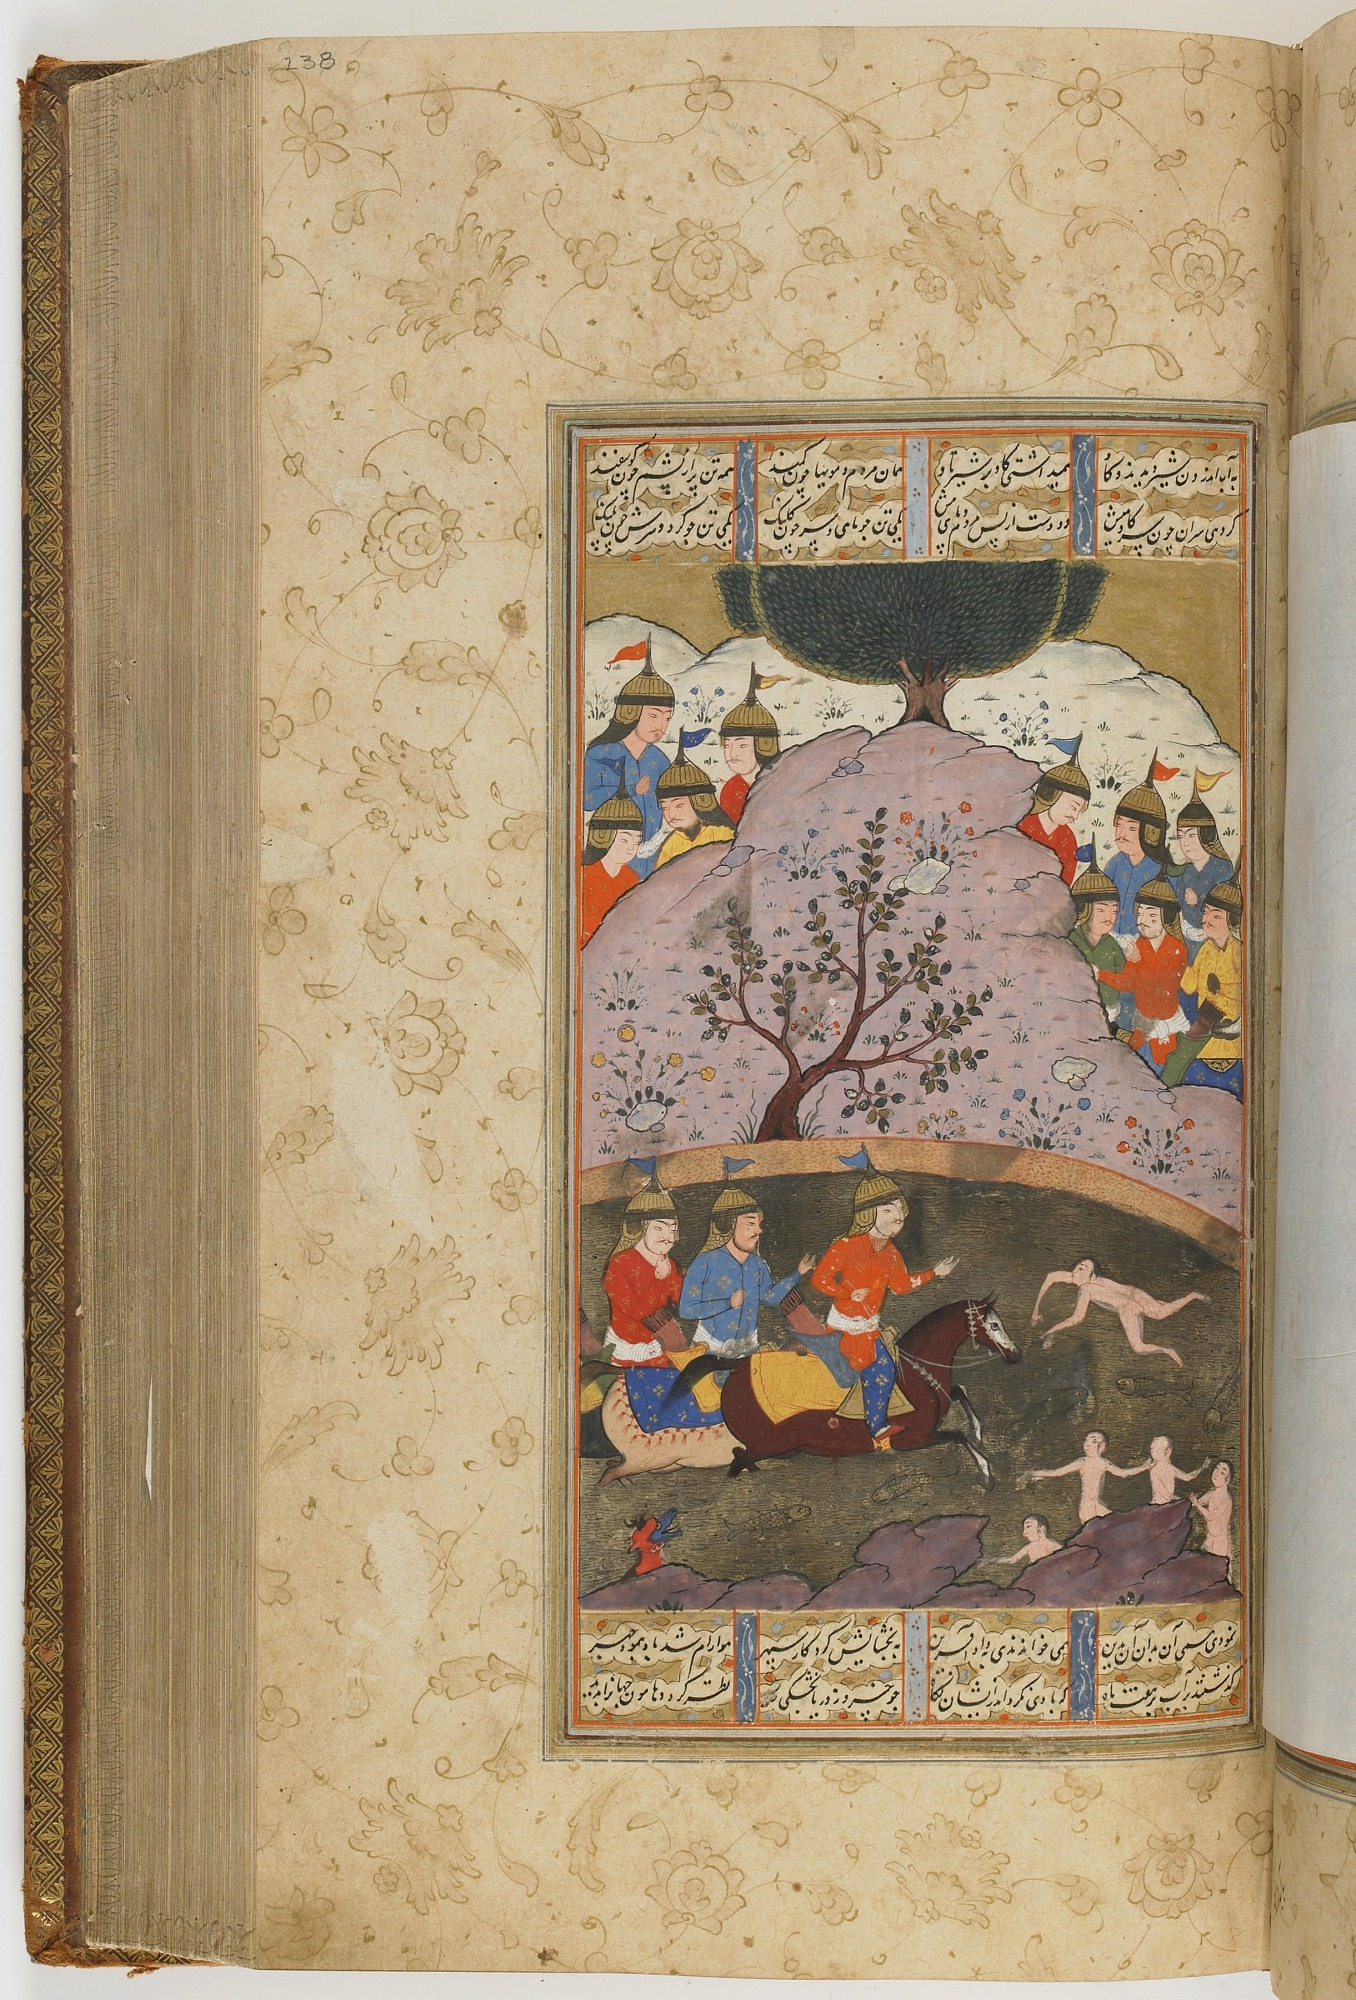 folio 238 recto: The Shahnama (Book of kings) by Firdausi (d. 1020)